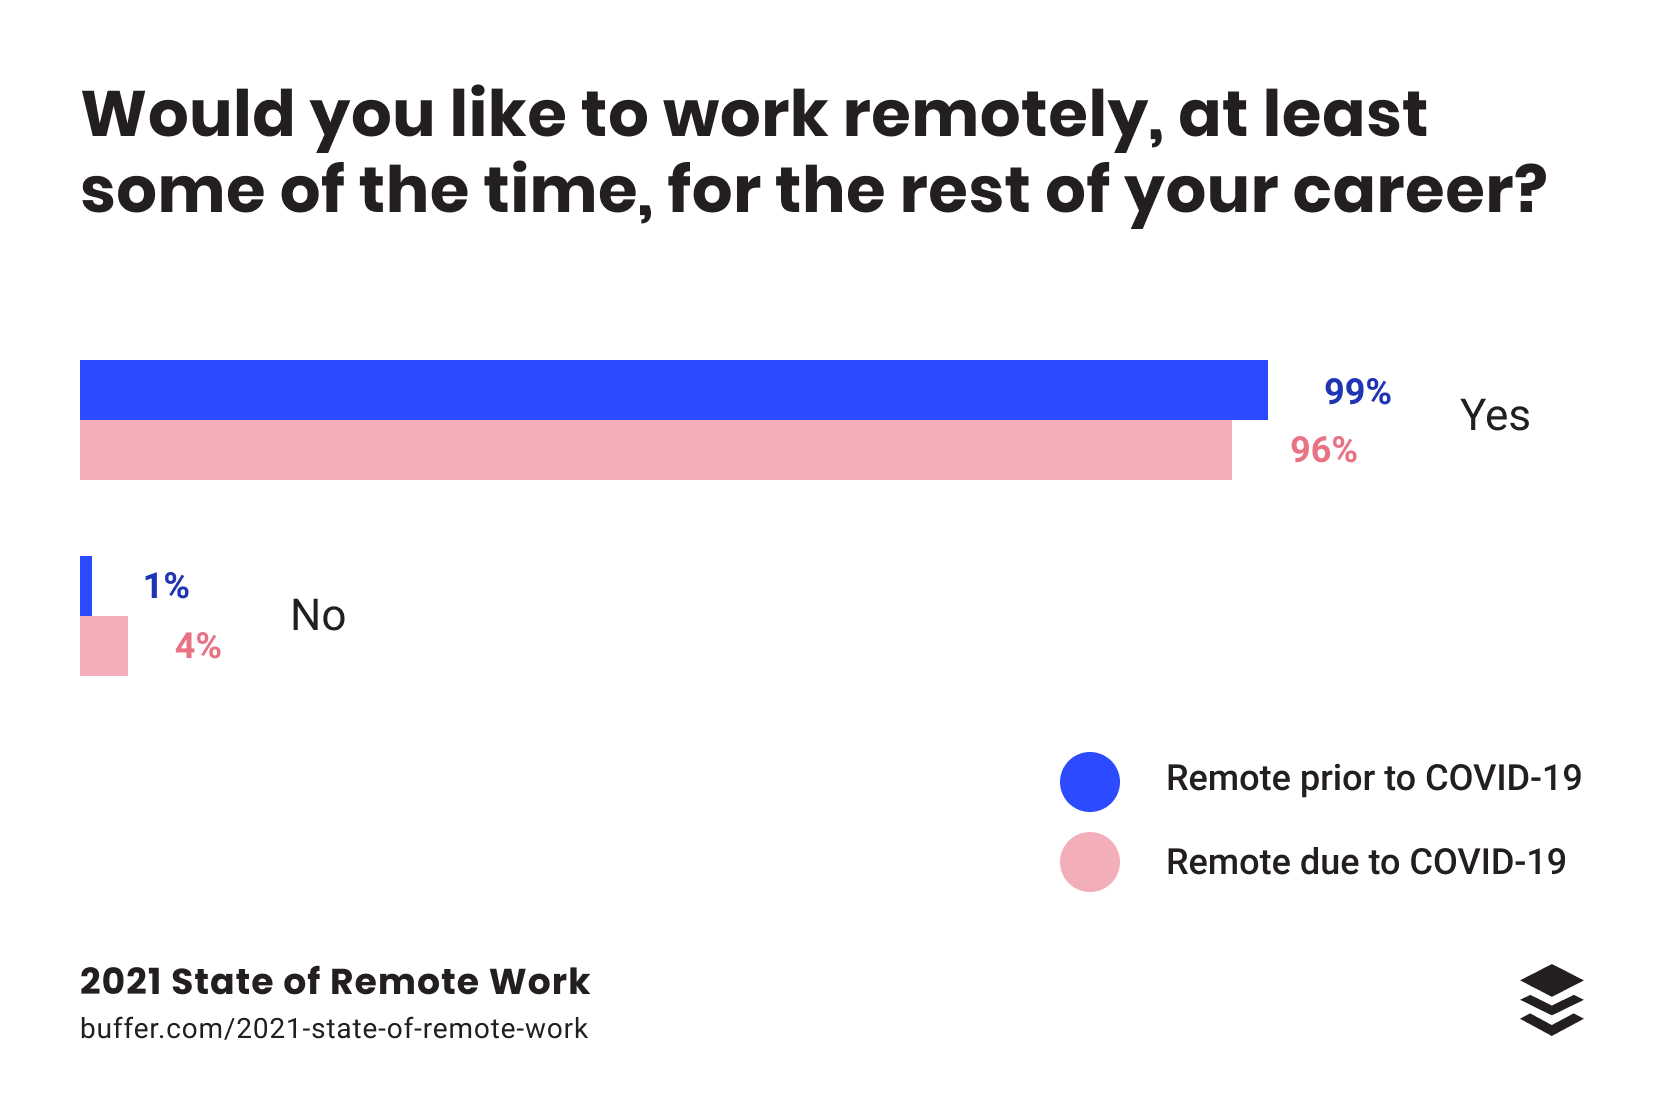 2021 state of remote work